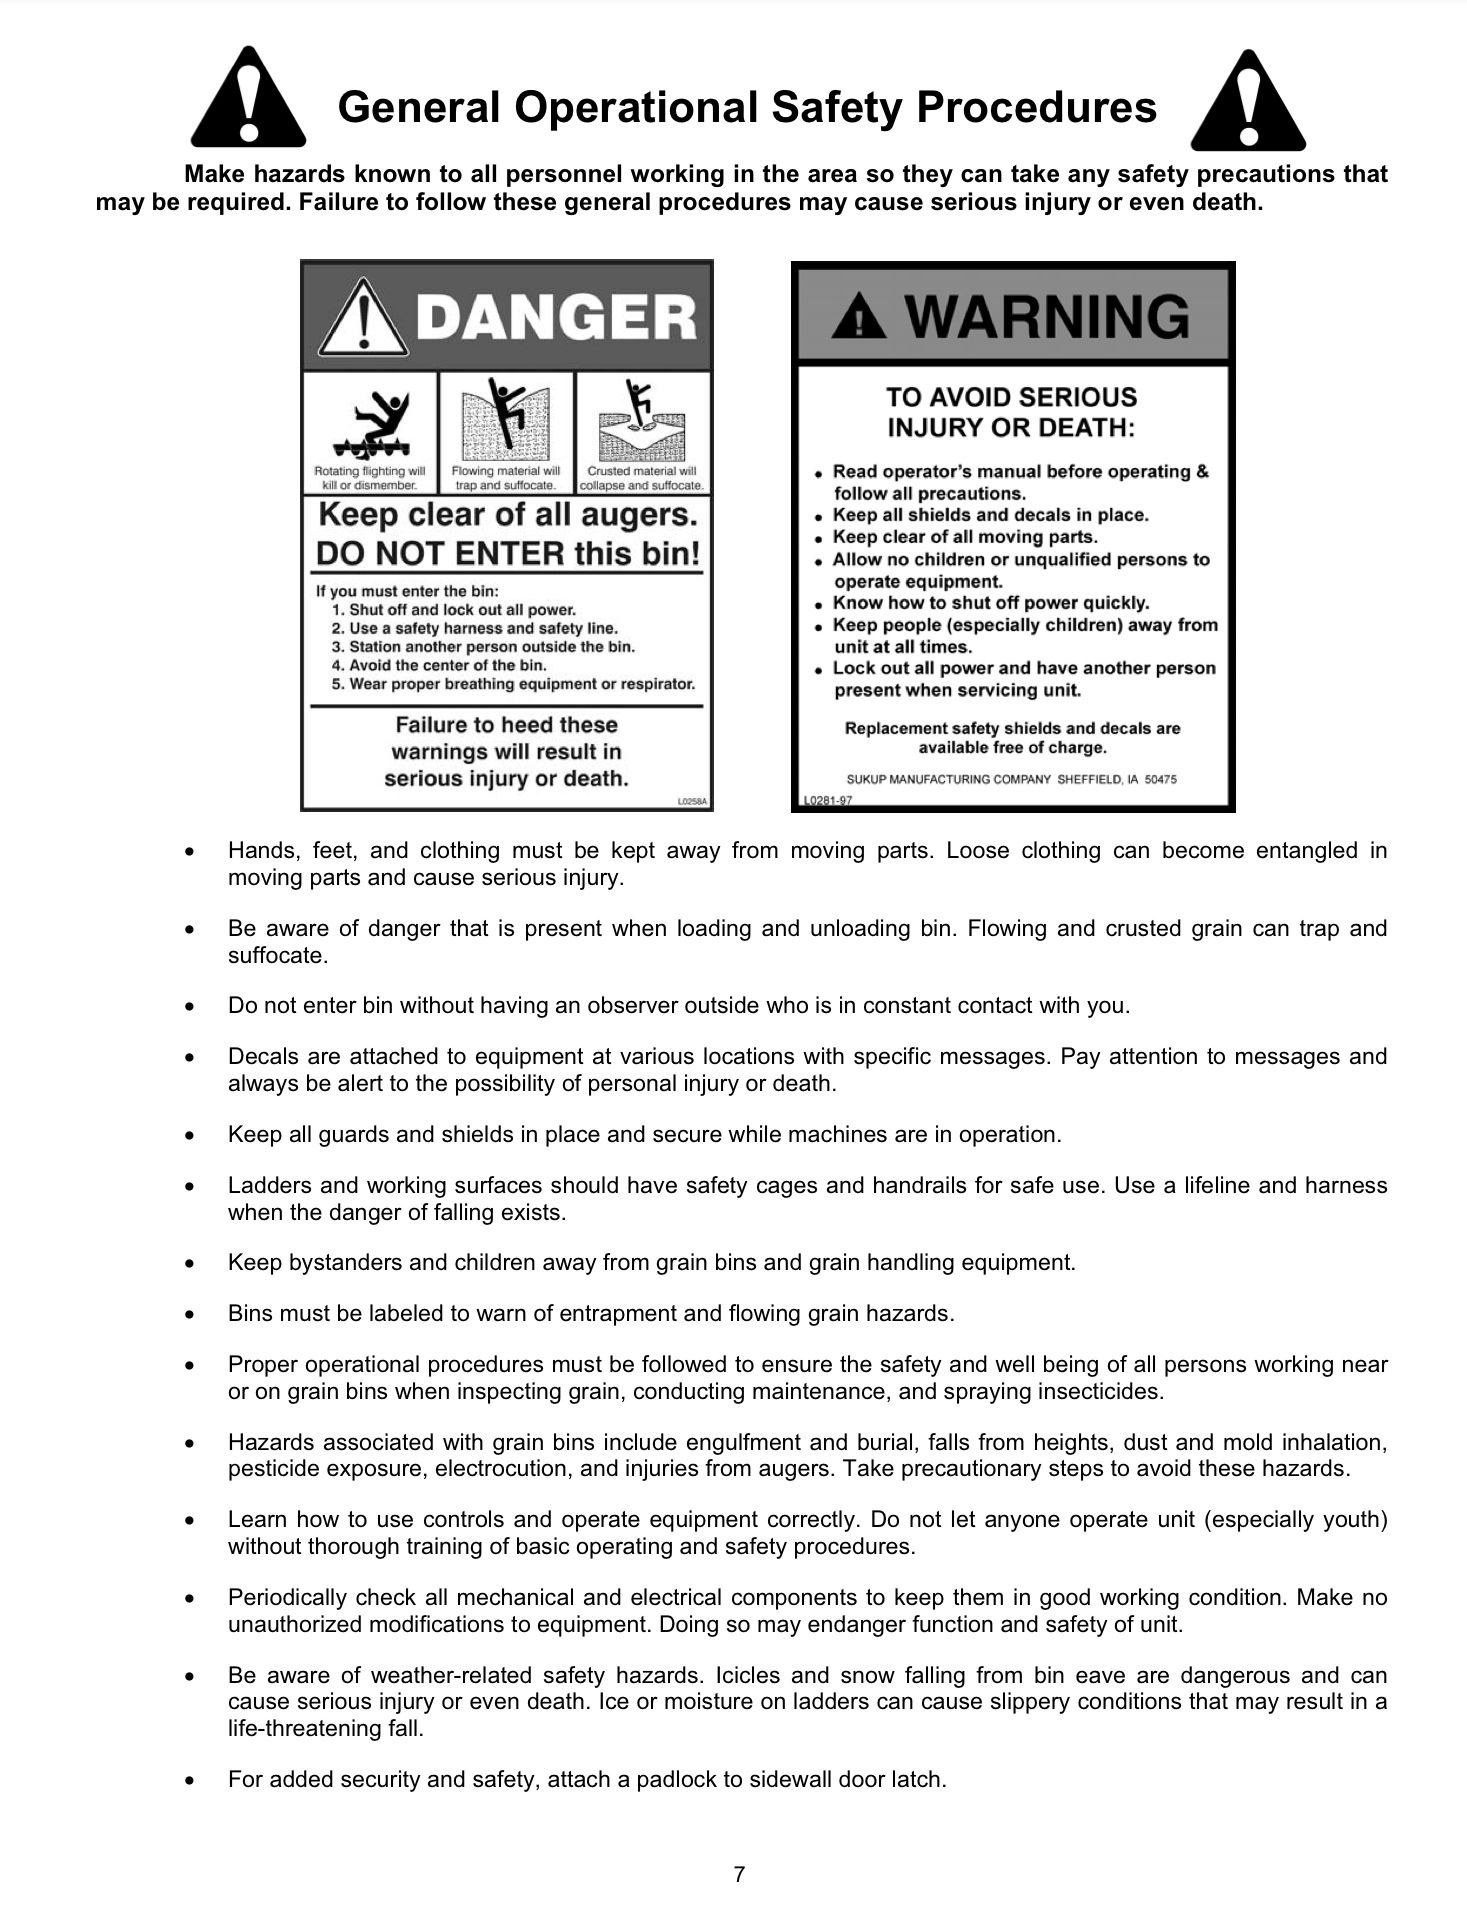 Make hazards known to all personnel working in the area so